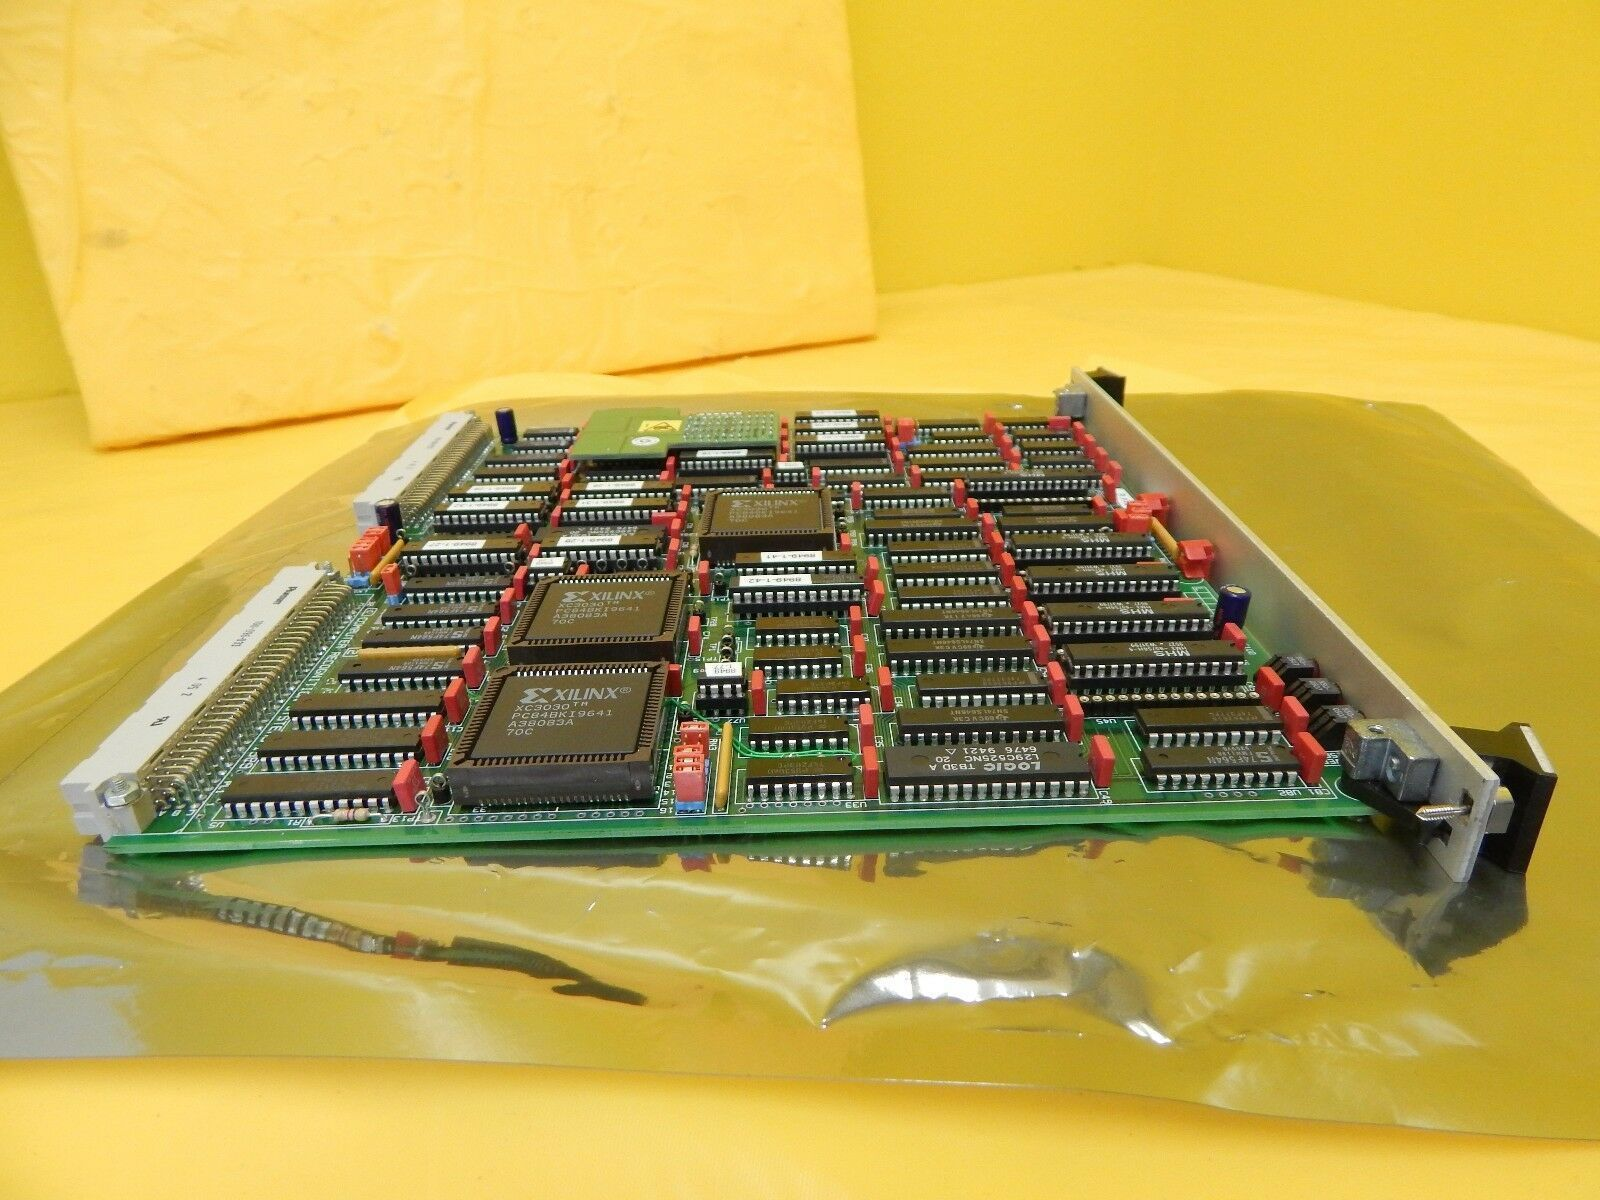 Computer Recognition Systems 8937-0000 Gemini PC 1 8949A5203 Quaestor Q5 Used